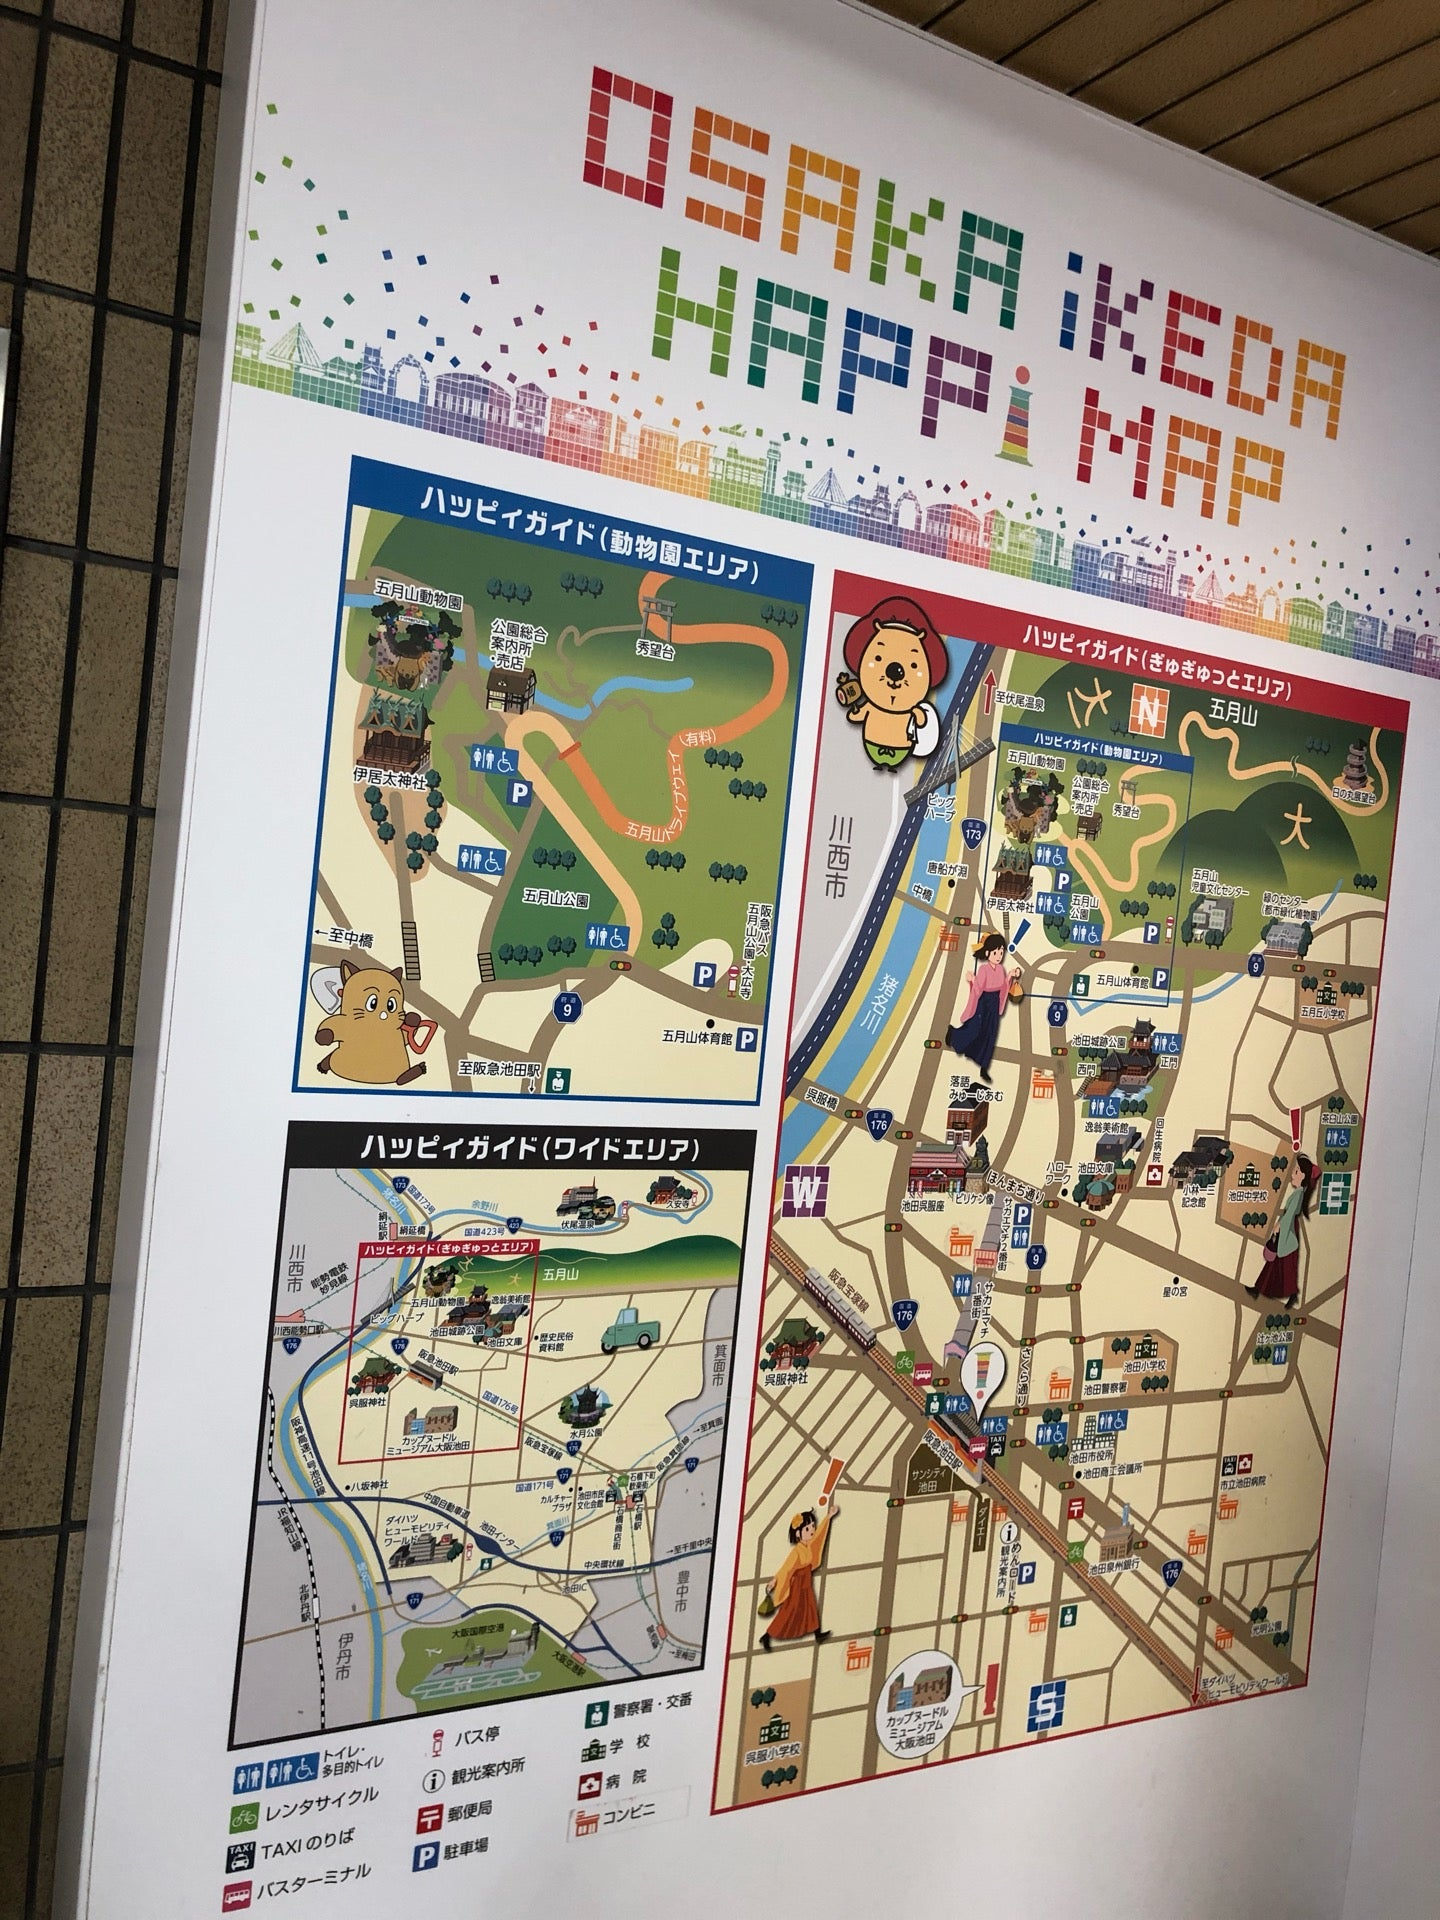 Osaka Ikeda Happi Map (@ 池田駅 - @hankyu_4sq in 池田市, 大阪府) https://t.co/wnMoSS1utd https://t.co/KcuRf5JzeV